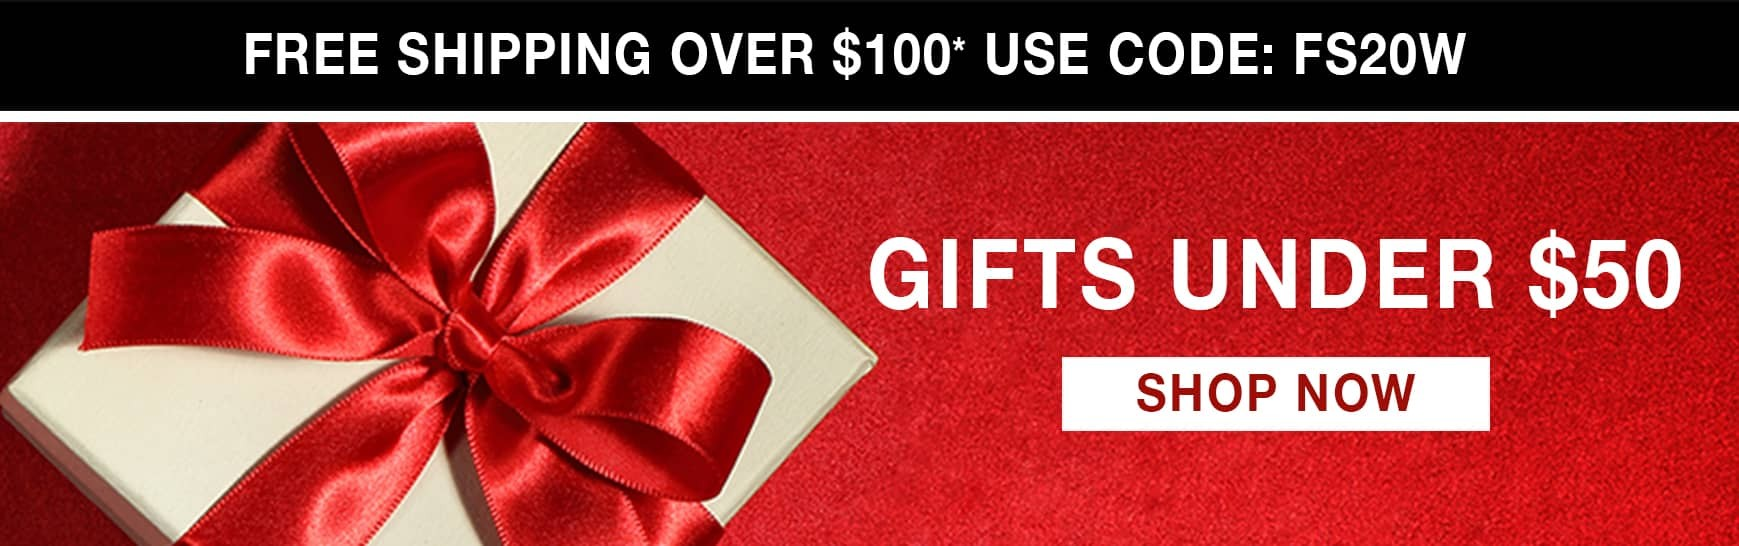 Gifts Under $50 - Free Shipping Orders Over $100* Use Code FS20W